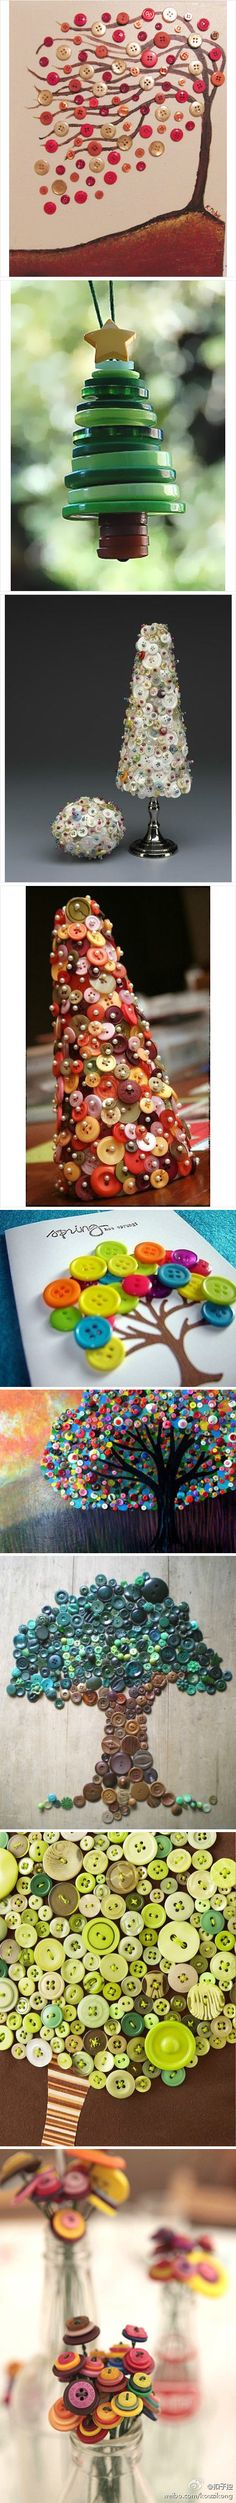 Beautiful art made with buttons